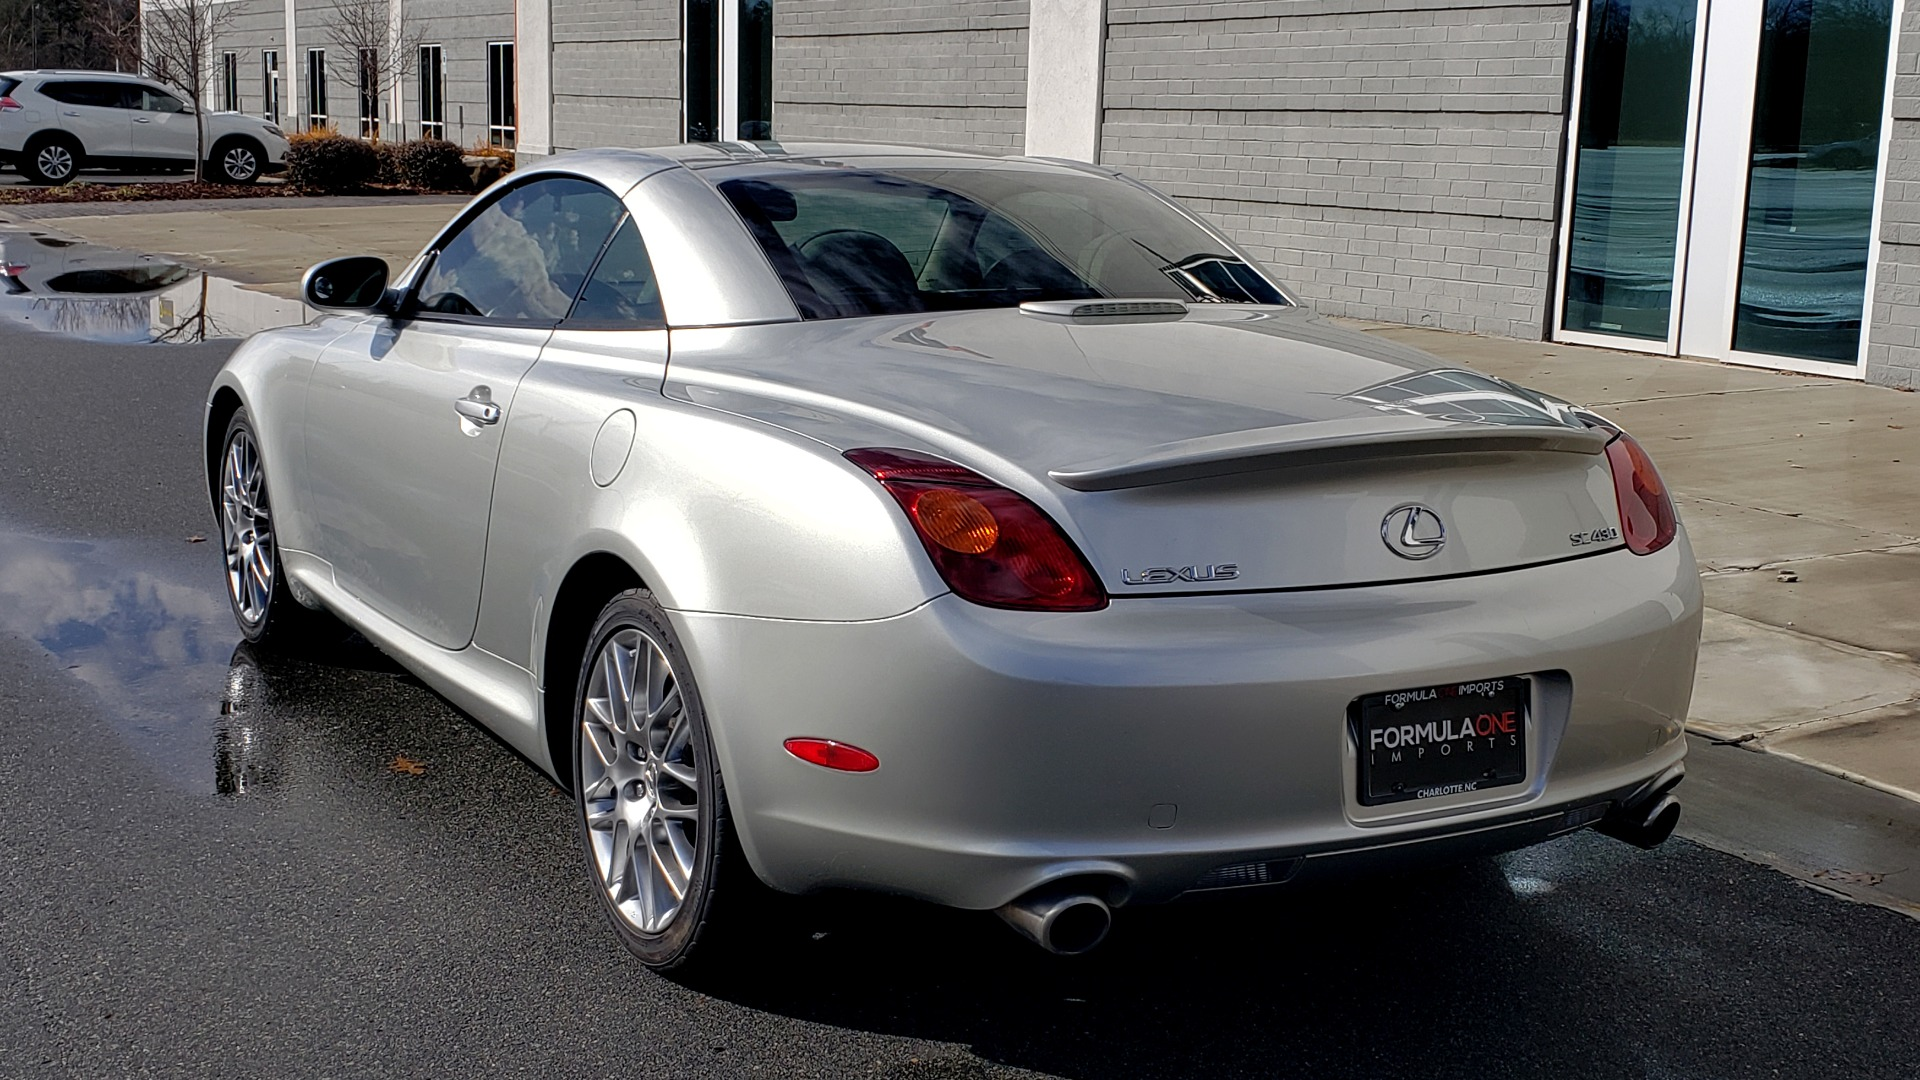 Used 2004 Lexus SC 430 CONVERTIBLE / 4.3L V8 / 5-SPD AUTO / MARK LEVINSON / 18IN WHEELS for sale Sold at Formula Imports in Charlotte NC 28227 4